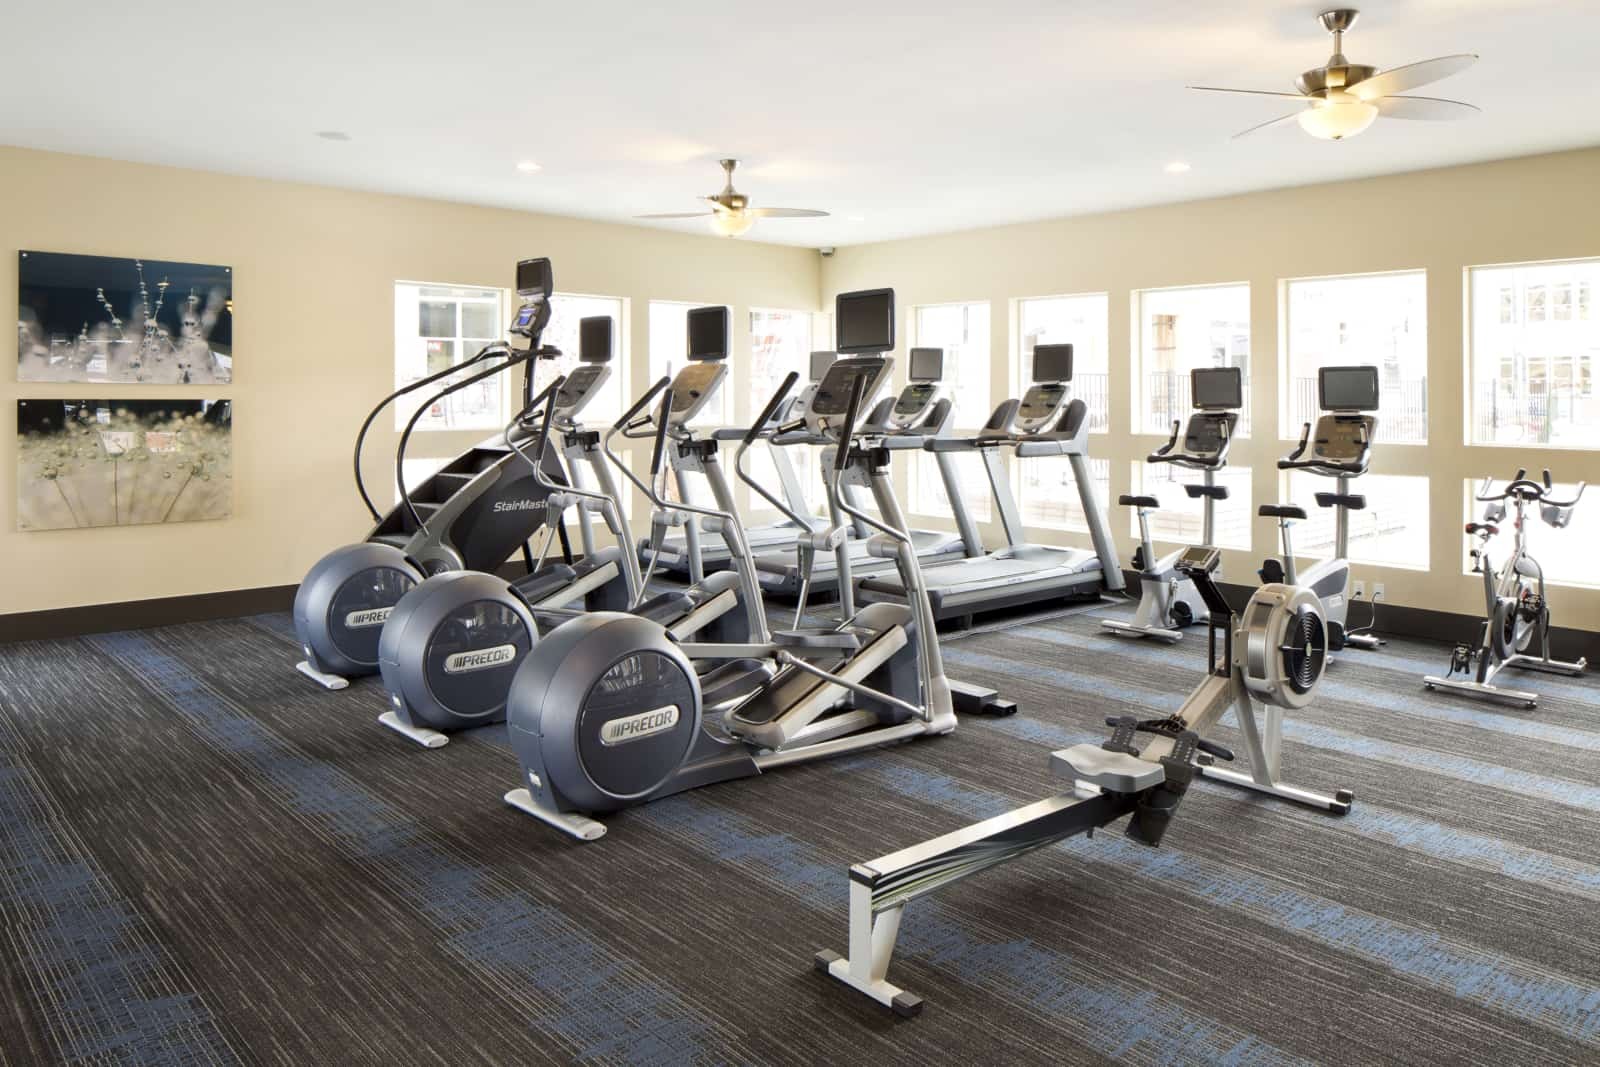 Interior of fitness center with treadmills, rowing machine and other equipment